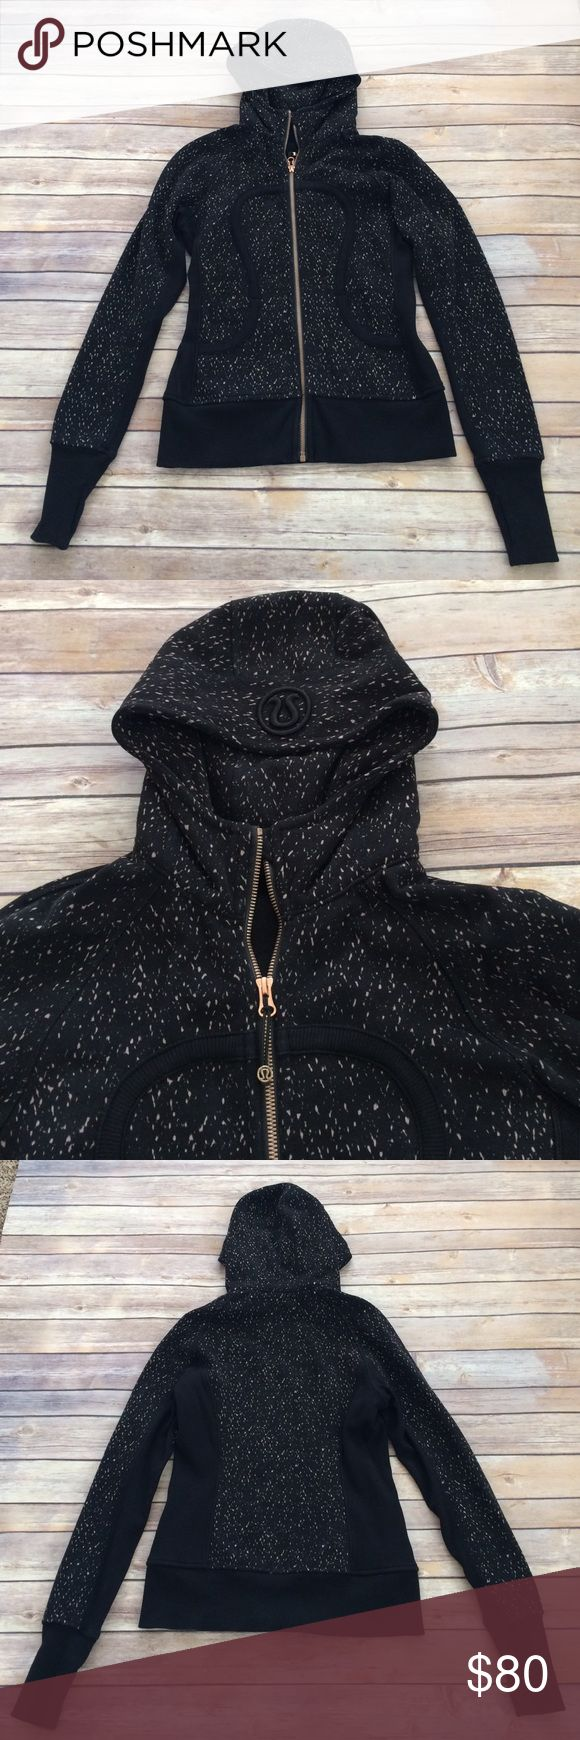 Lululemon rose gold hoodie Gorgeous Lululemon rose gold and black Scuba hoodie in EUC. Only worn a handful of times and never machine dried. Like new! lululemon athletica Jackets & Coats